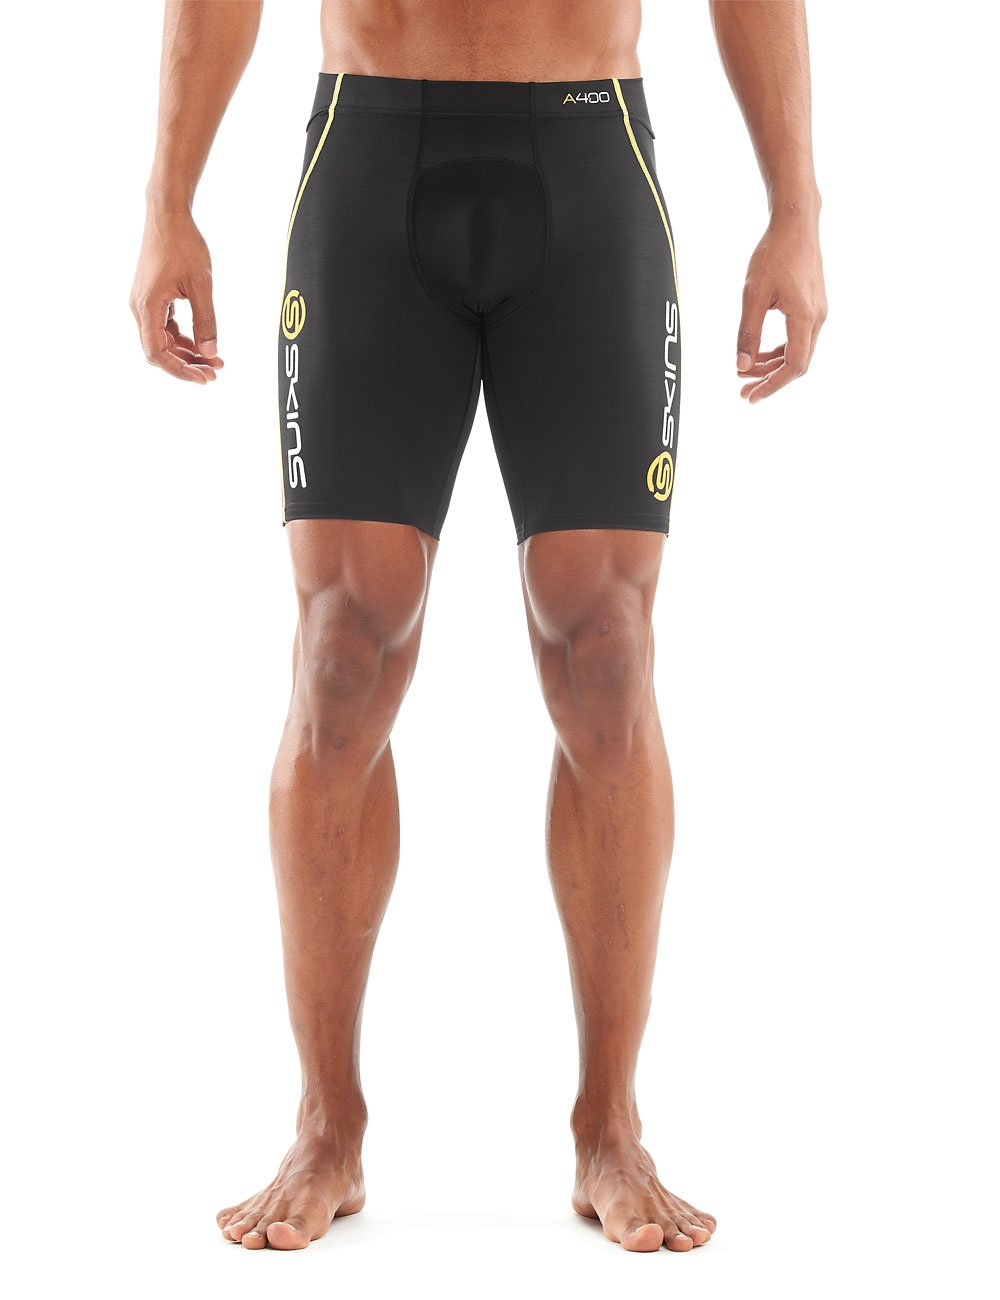 SKINS Men's A400 Compression Power Shorts